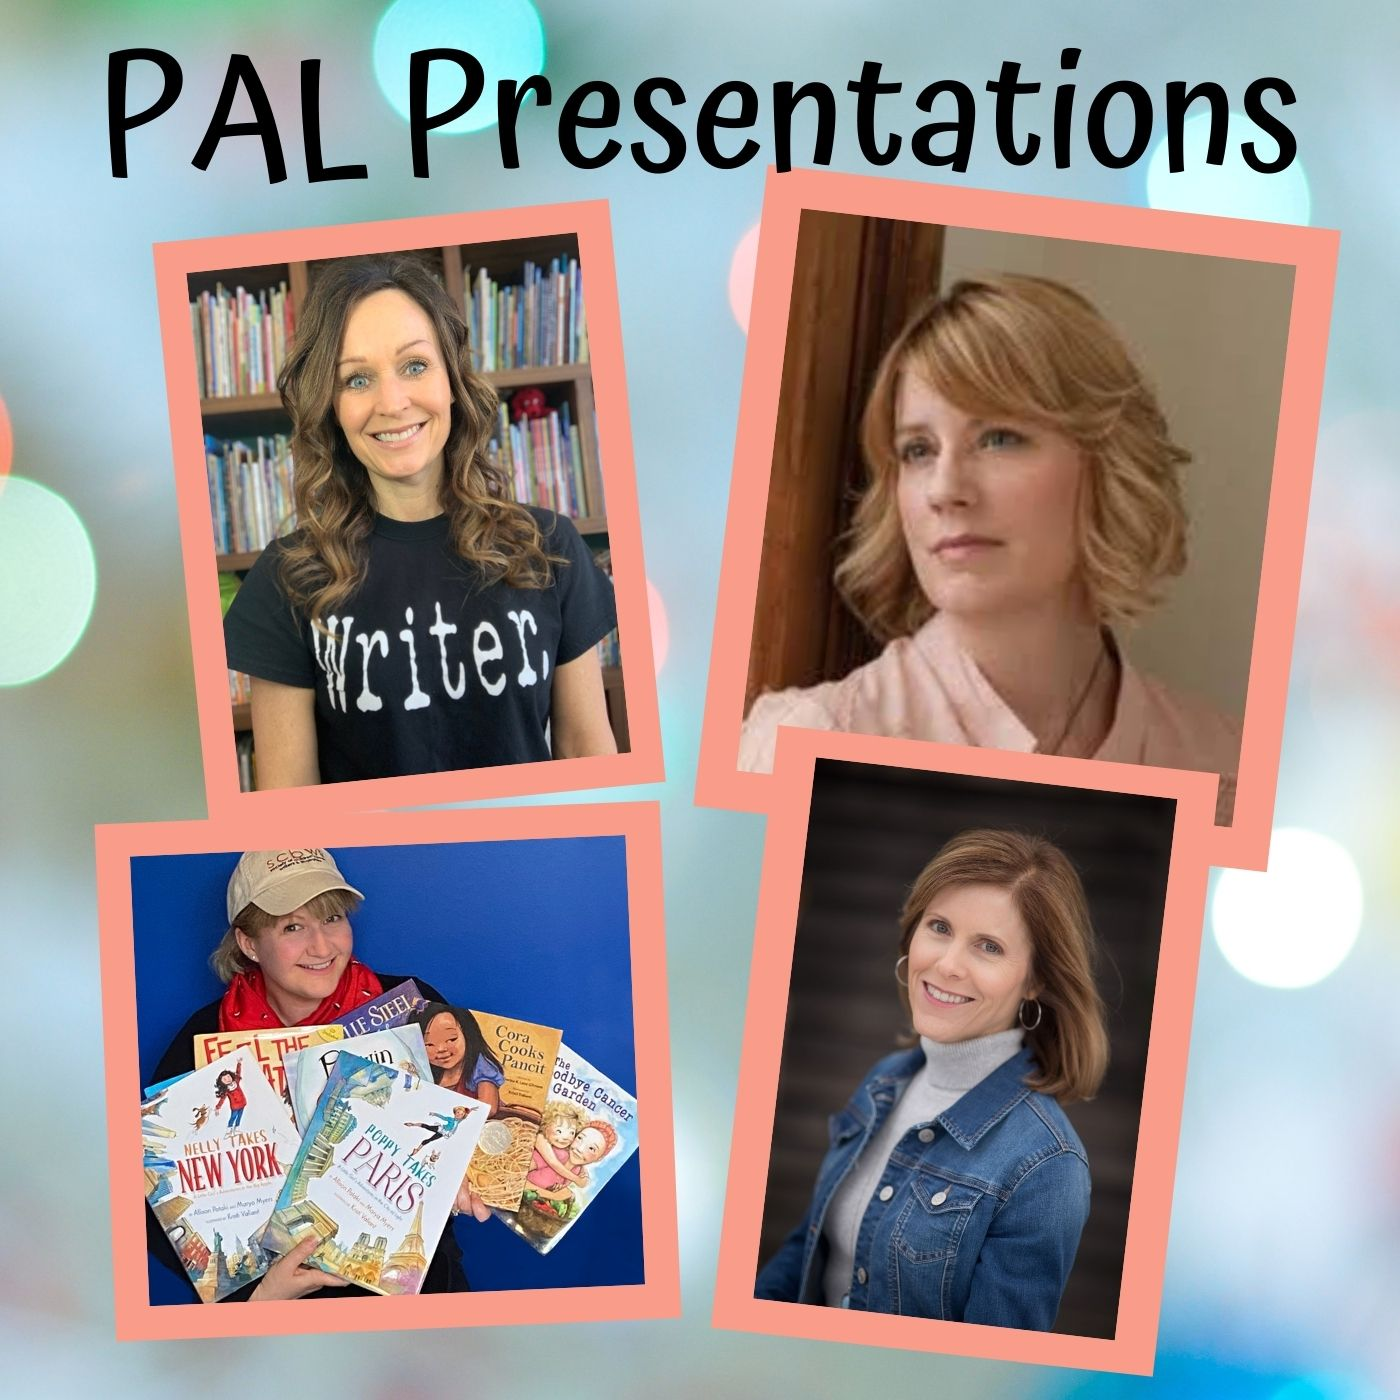 Our talented group of PAL authors and author-illustrator will be giving virtual talks in 2021. Check them out and sign up: Shannon Anderson - February 6, 2021 Kristi Valiant - July 17, 2021 Cindy Argentine - November 6, 2021 Sharon Biggs Waller - December 4, 2021 - info to come